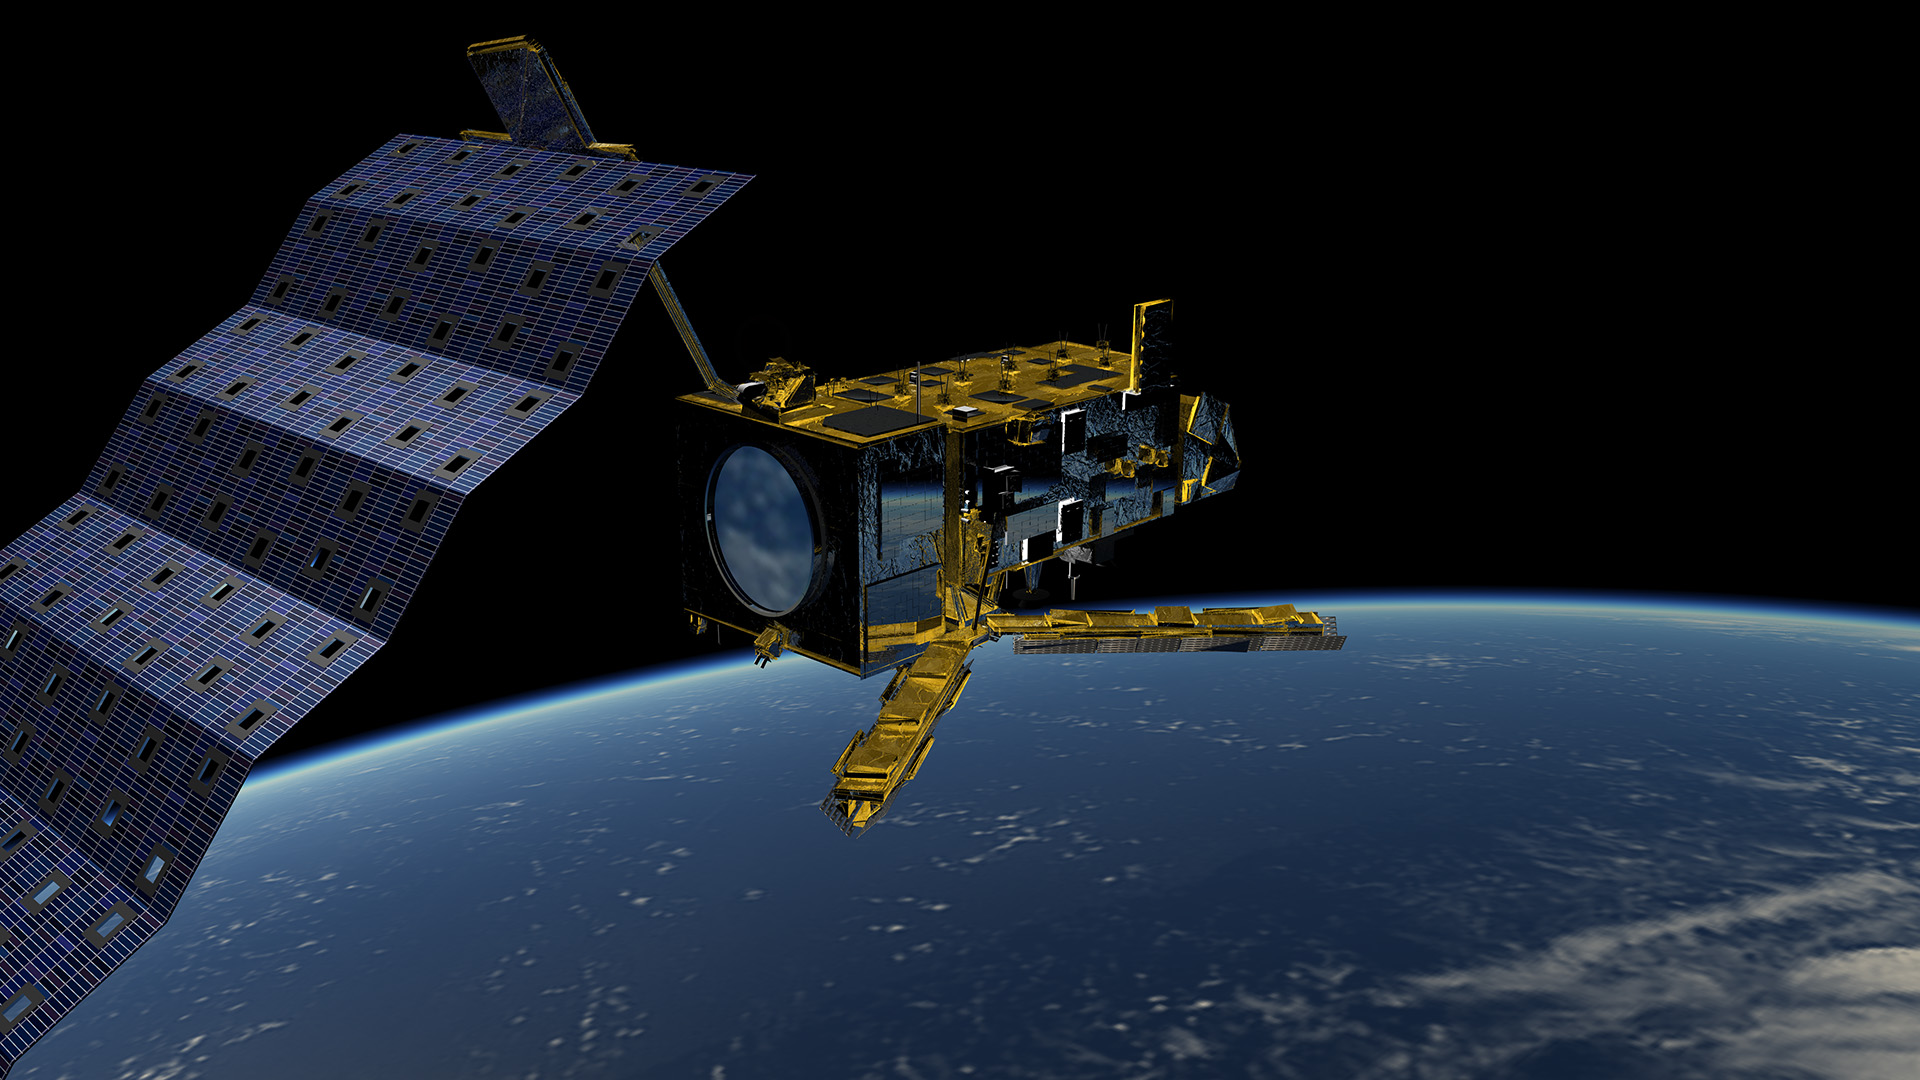 Artist's impression of Metop-C in orbit above the Earth